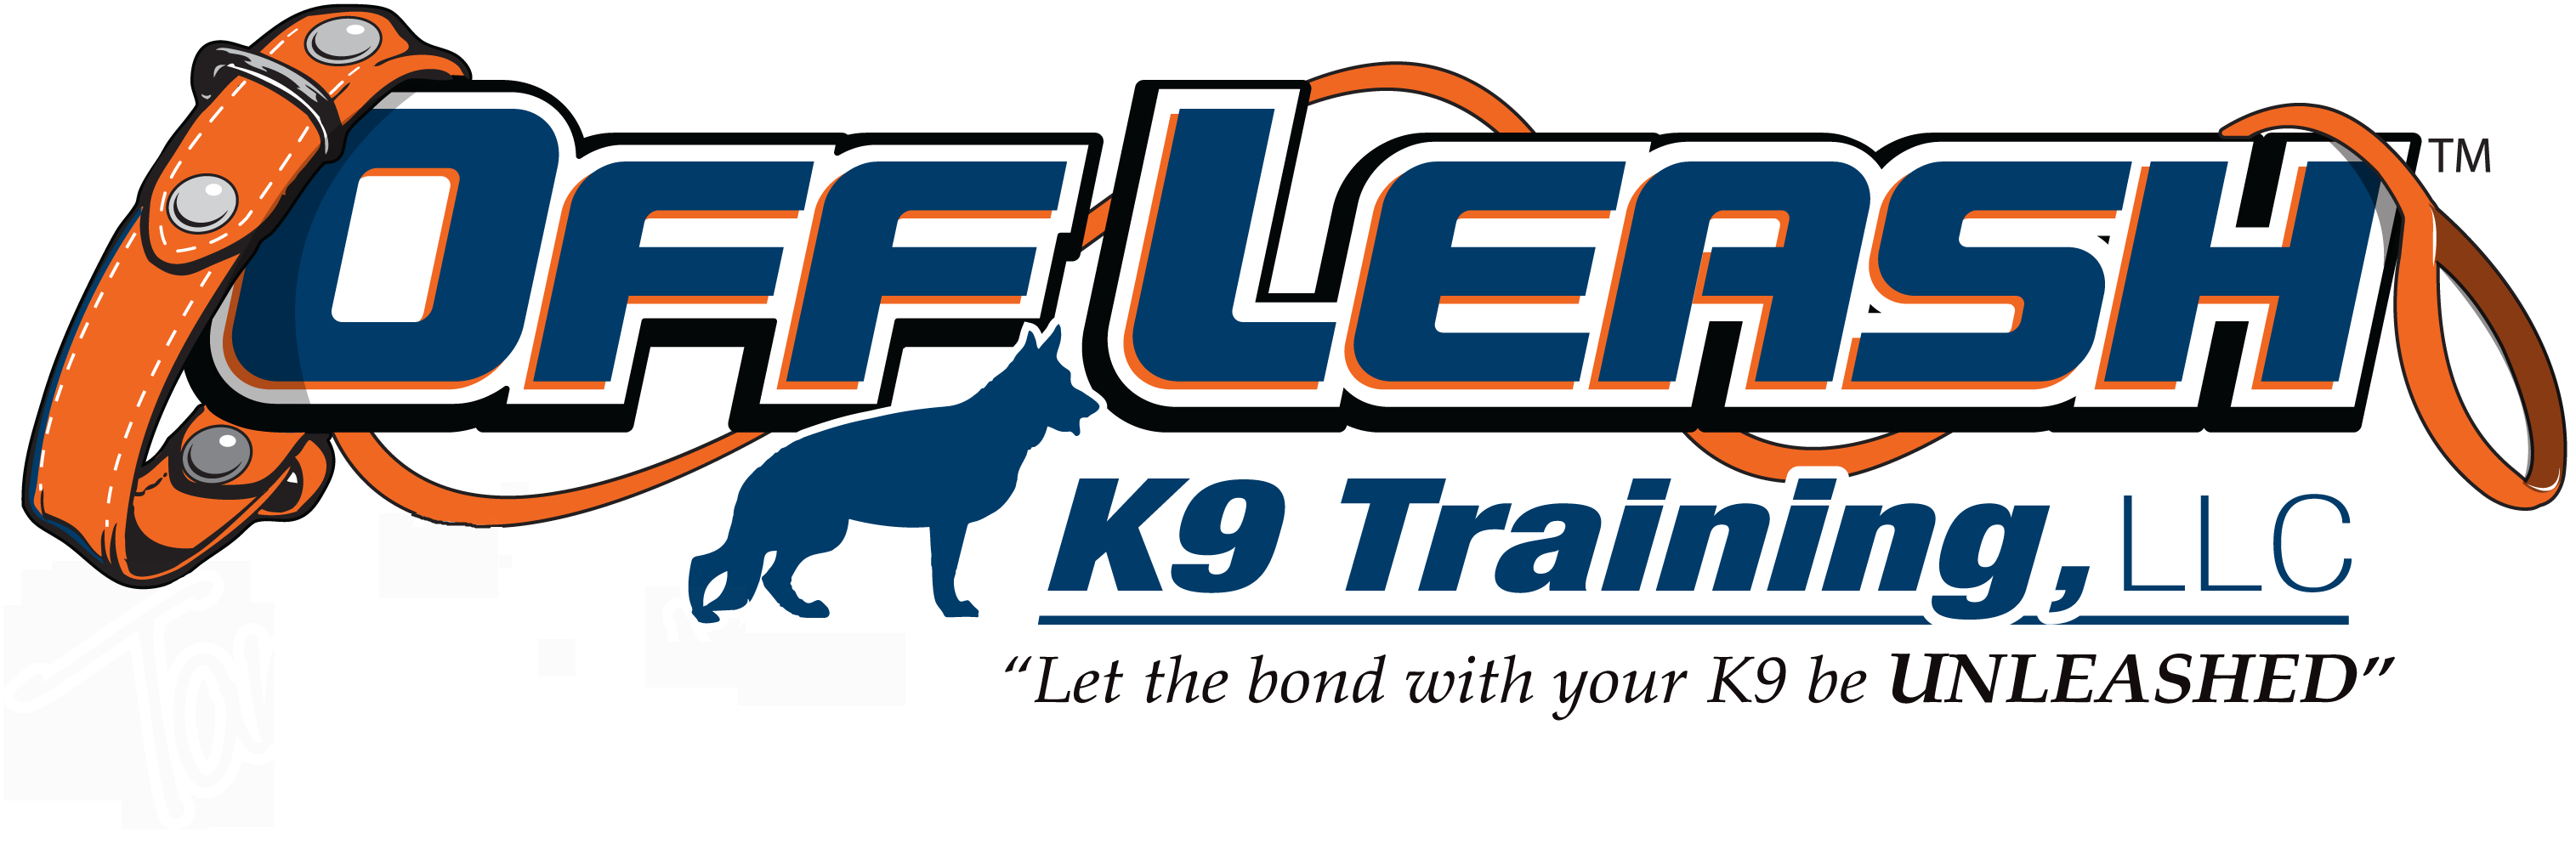 Leesburg Offleash K9 Dog Training